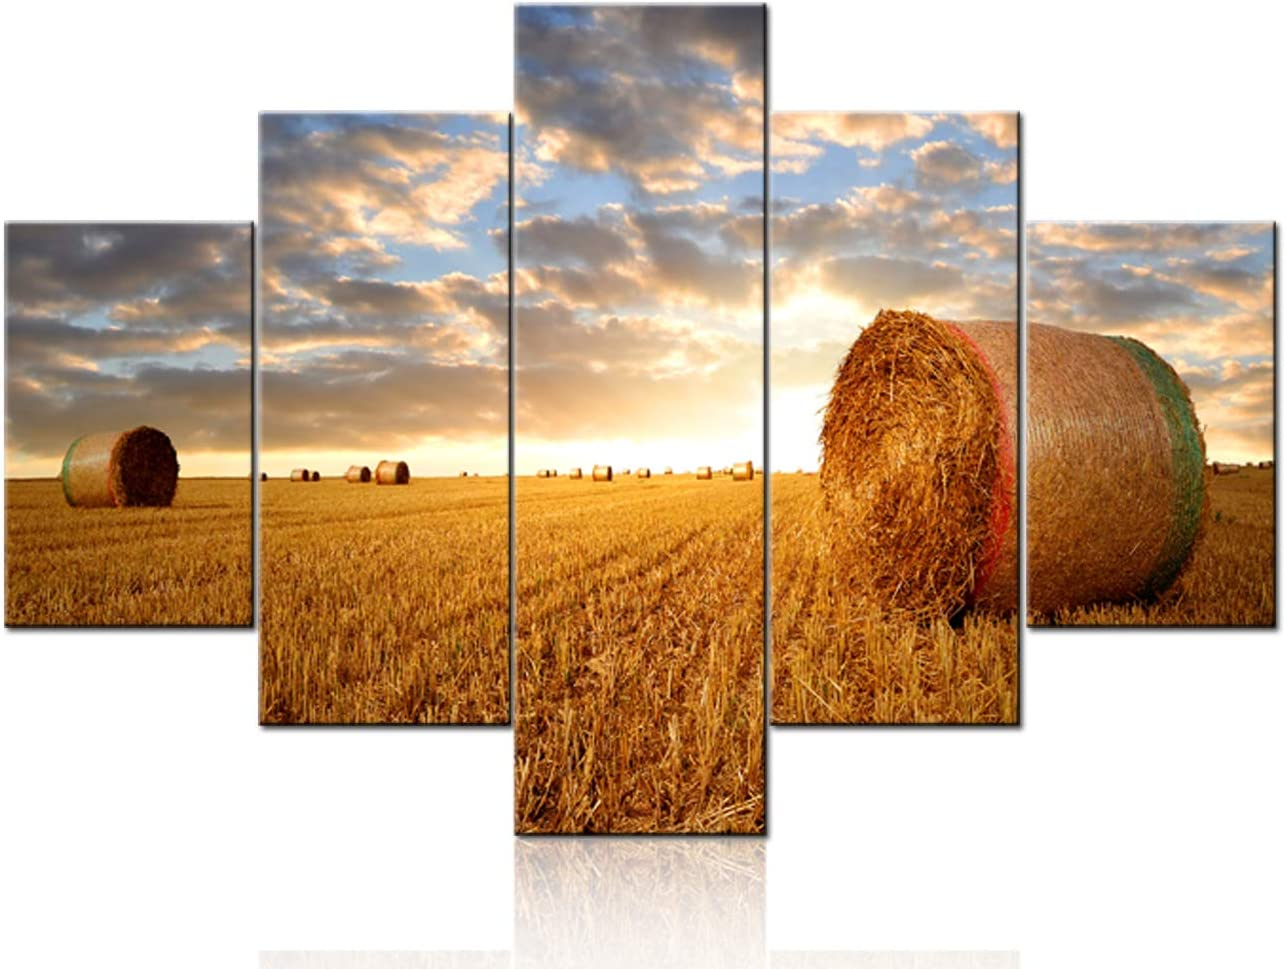 Amazon Com Tumovo Large 5 Piece Canvas Wall Art For Living Room Straw Bales On Farmland At Sunset Picture Modern Home Decor Stretched And Framed Ready To Hang 60 W X 40